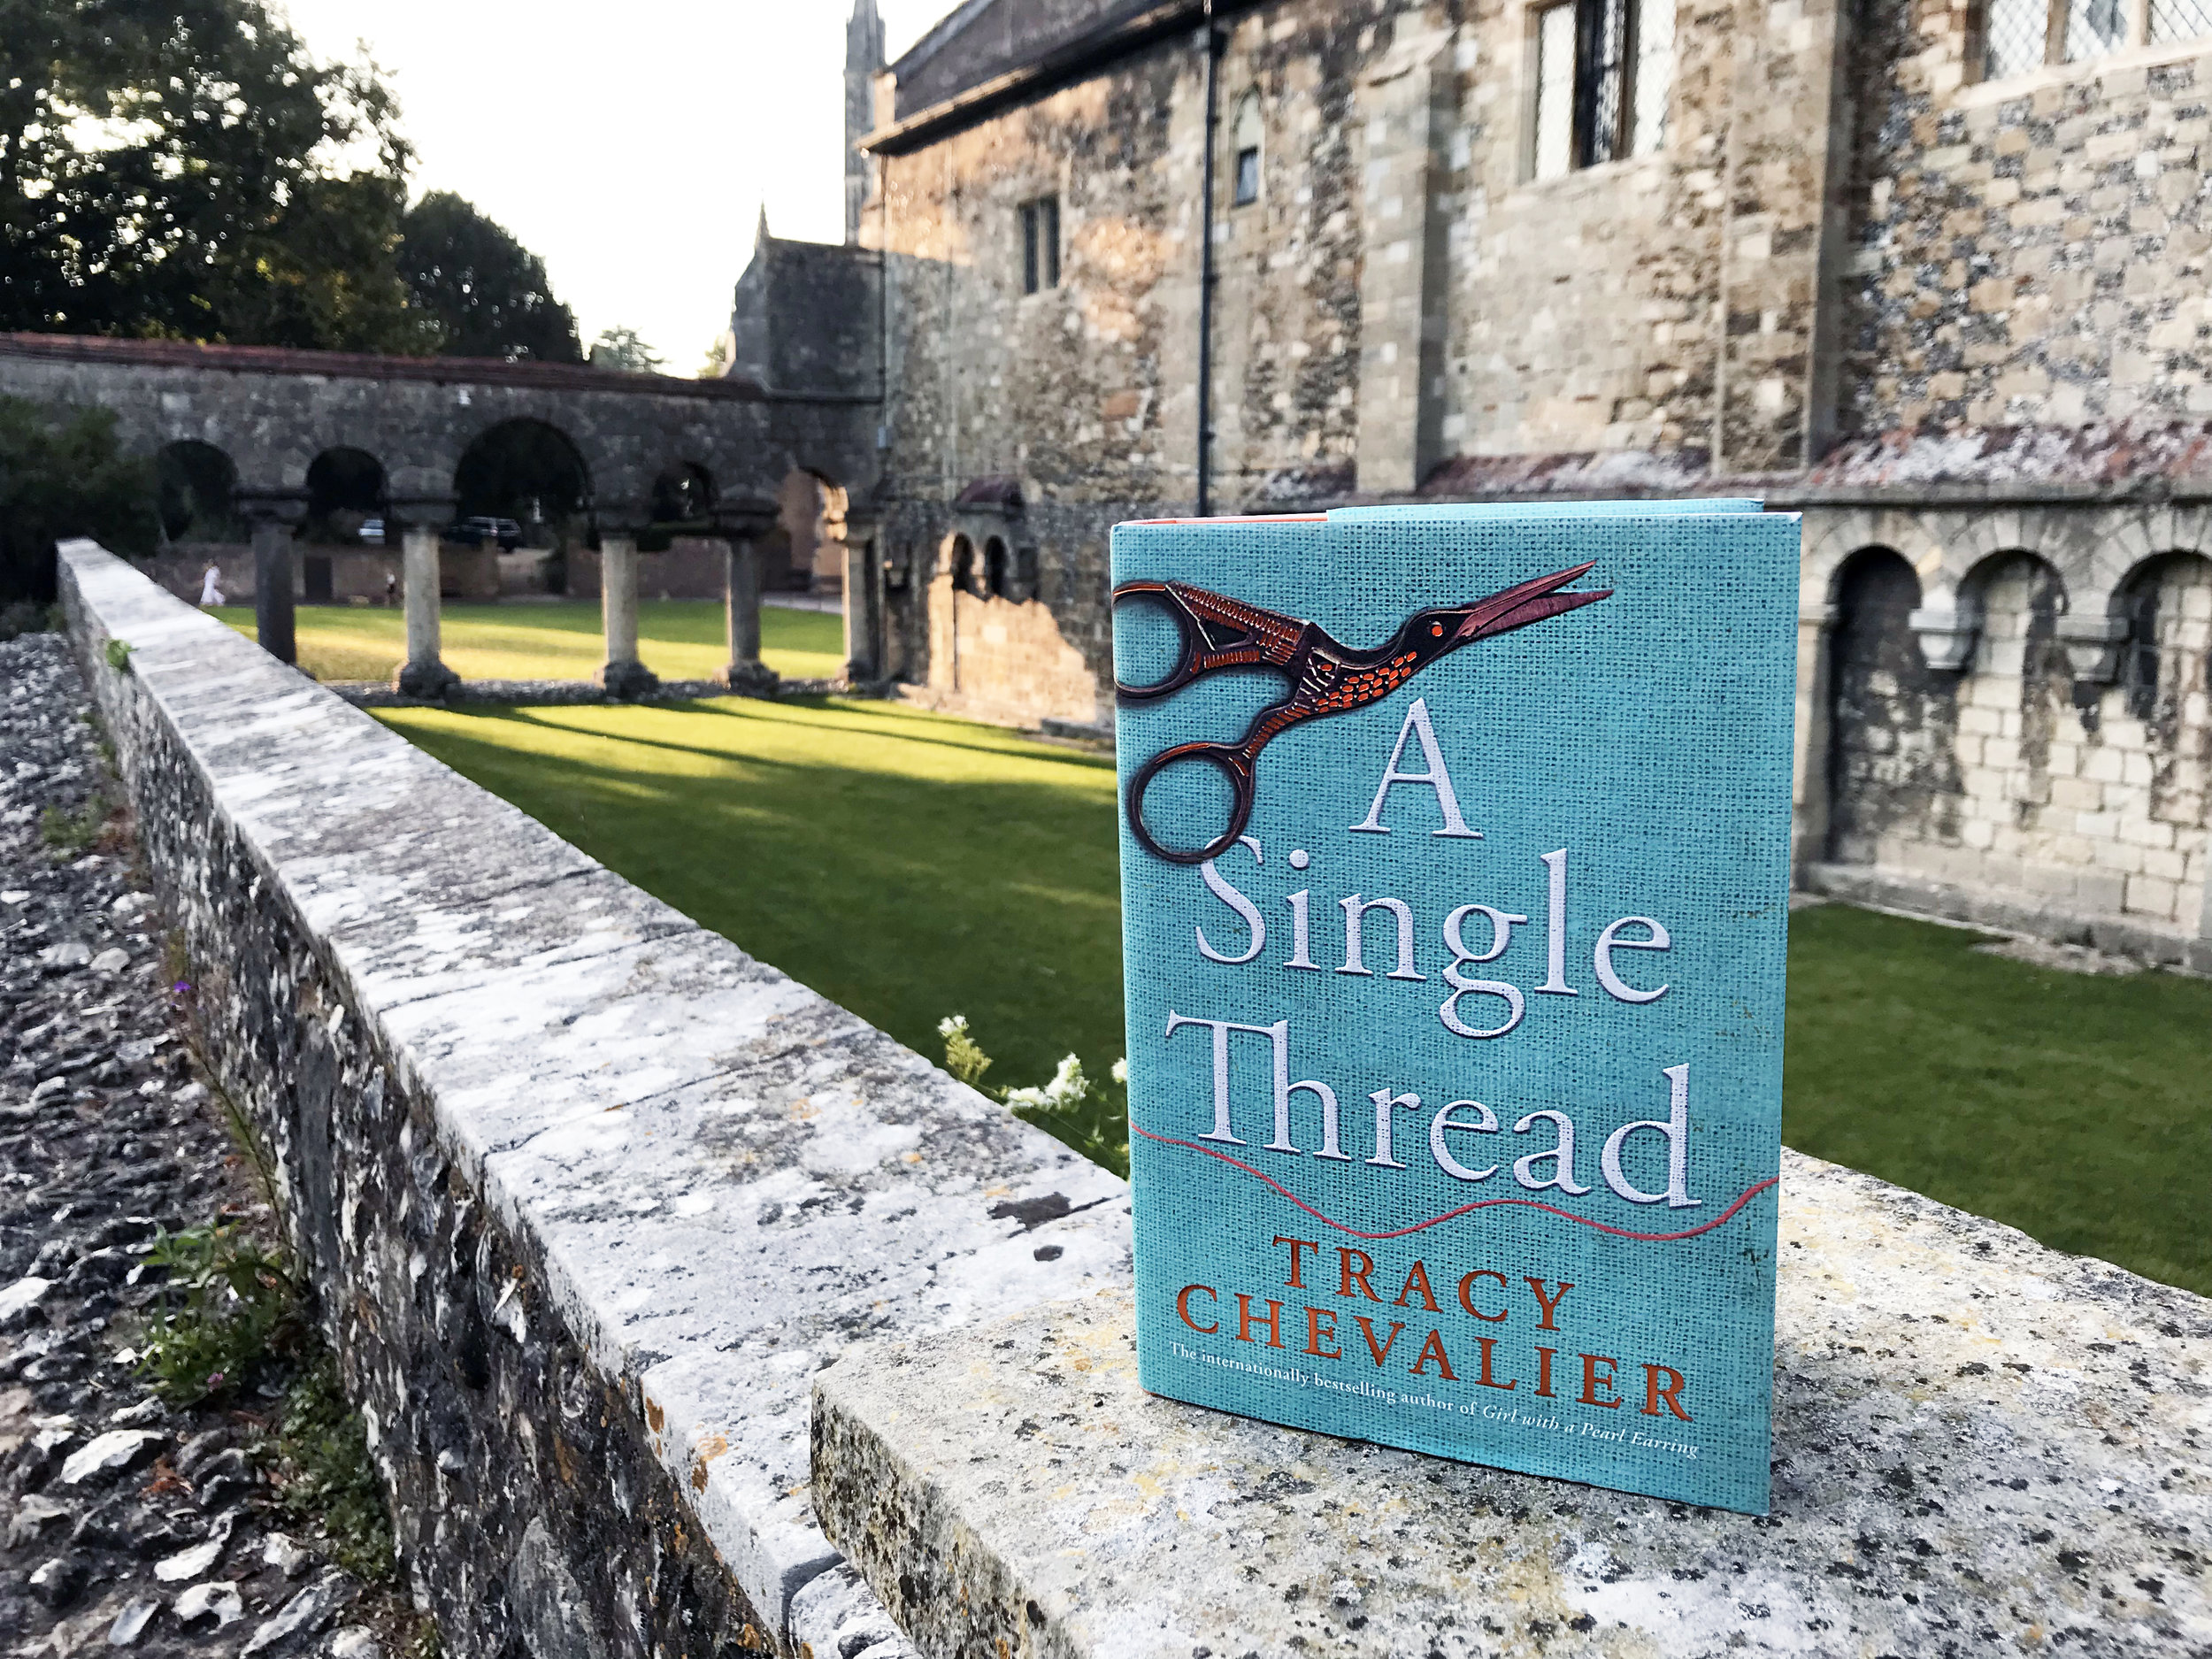 Tracy Chevalier's new novel photographed before the backdrop of Winchester Cathedral